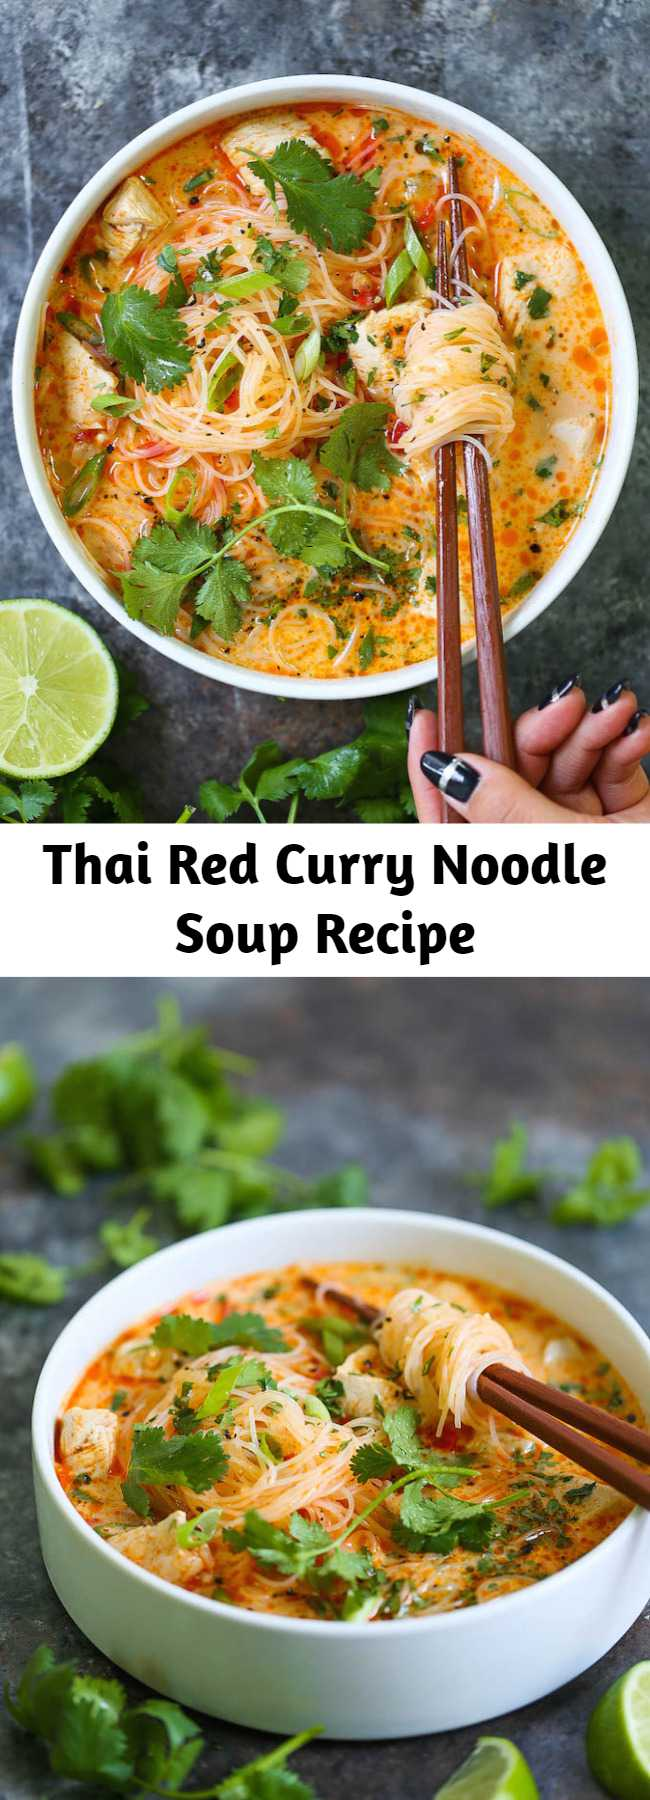 Thai Red Curry Noodle Soup Recipe - Yes, you can have Thai takeout right at home! This soup is packed with so much flavor with bites of tender chicken, rice noodles, cilantro, basil and lime juice! So cozy, comforting and fragrant – plus, it's easy enough for any night of the week!